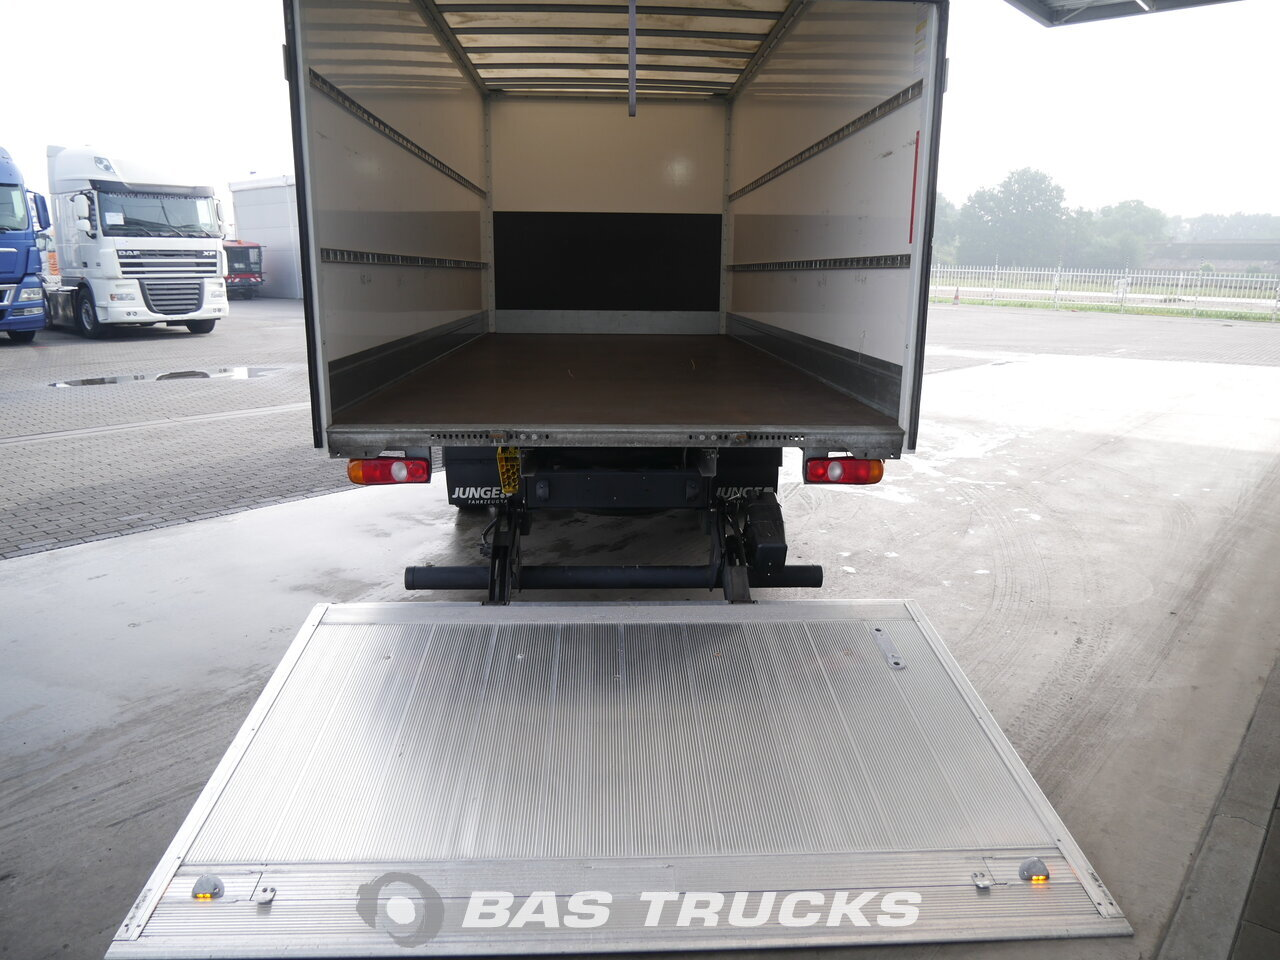 For sale at BAS Trucks: FUSO Canter 7C15 4X2 05/2014